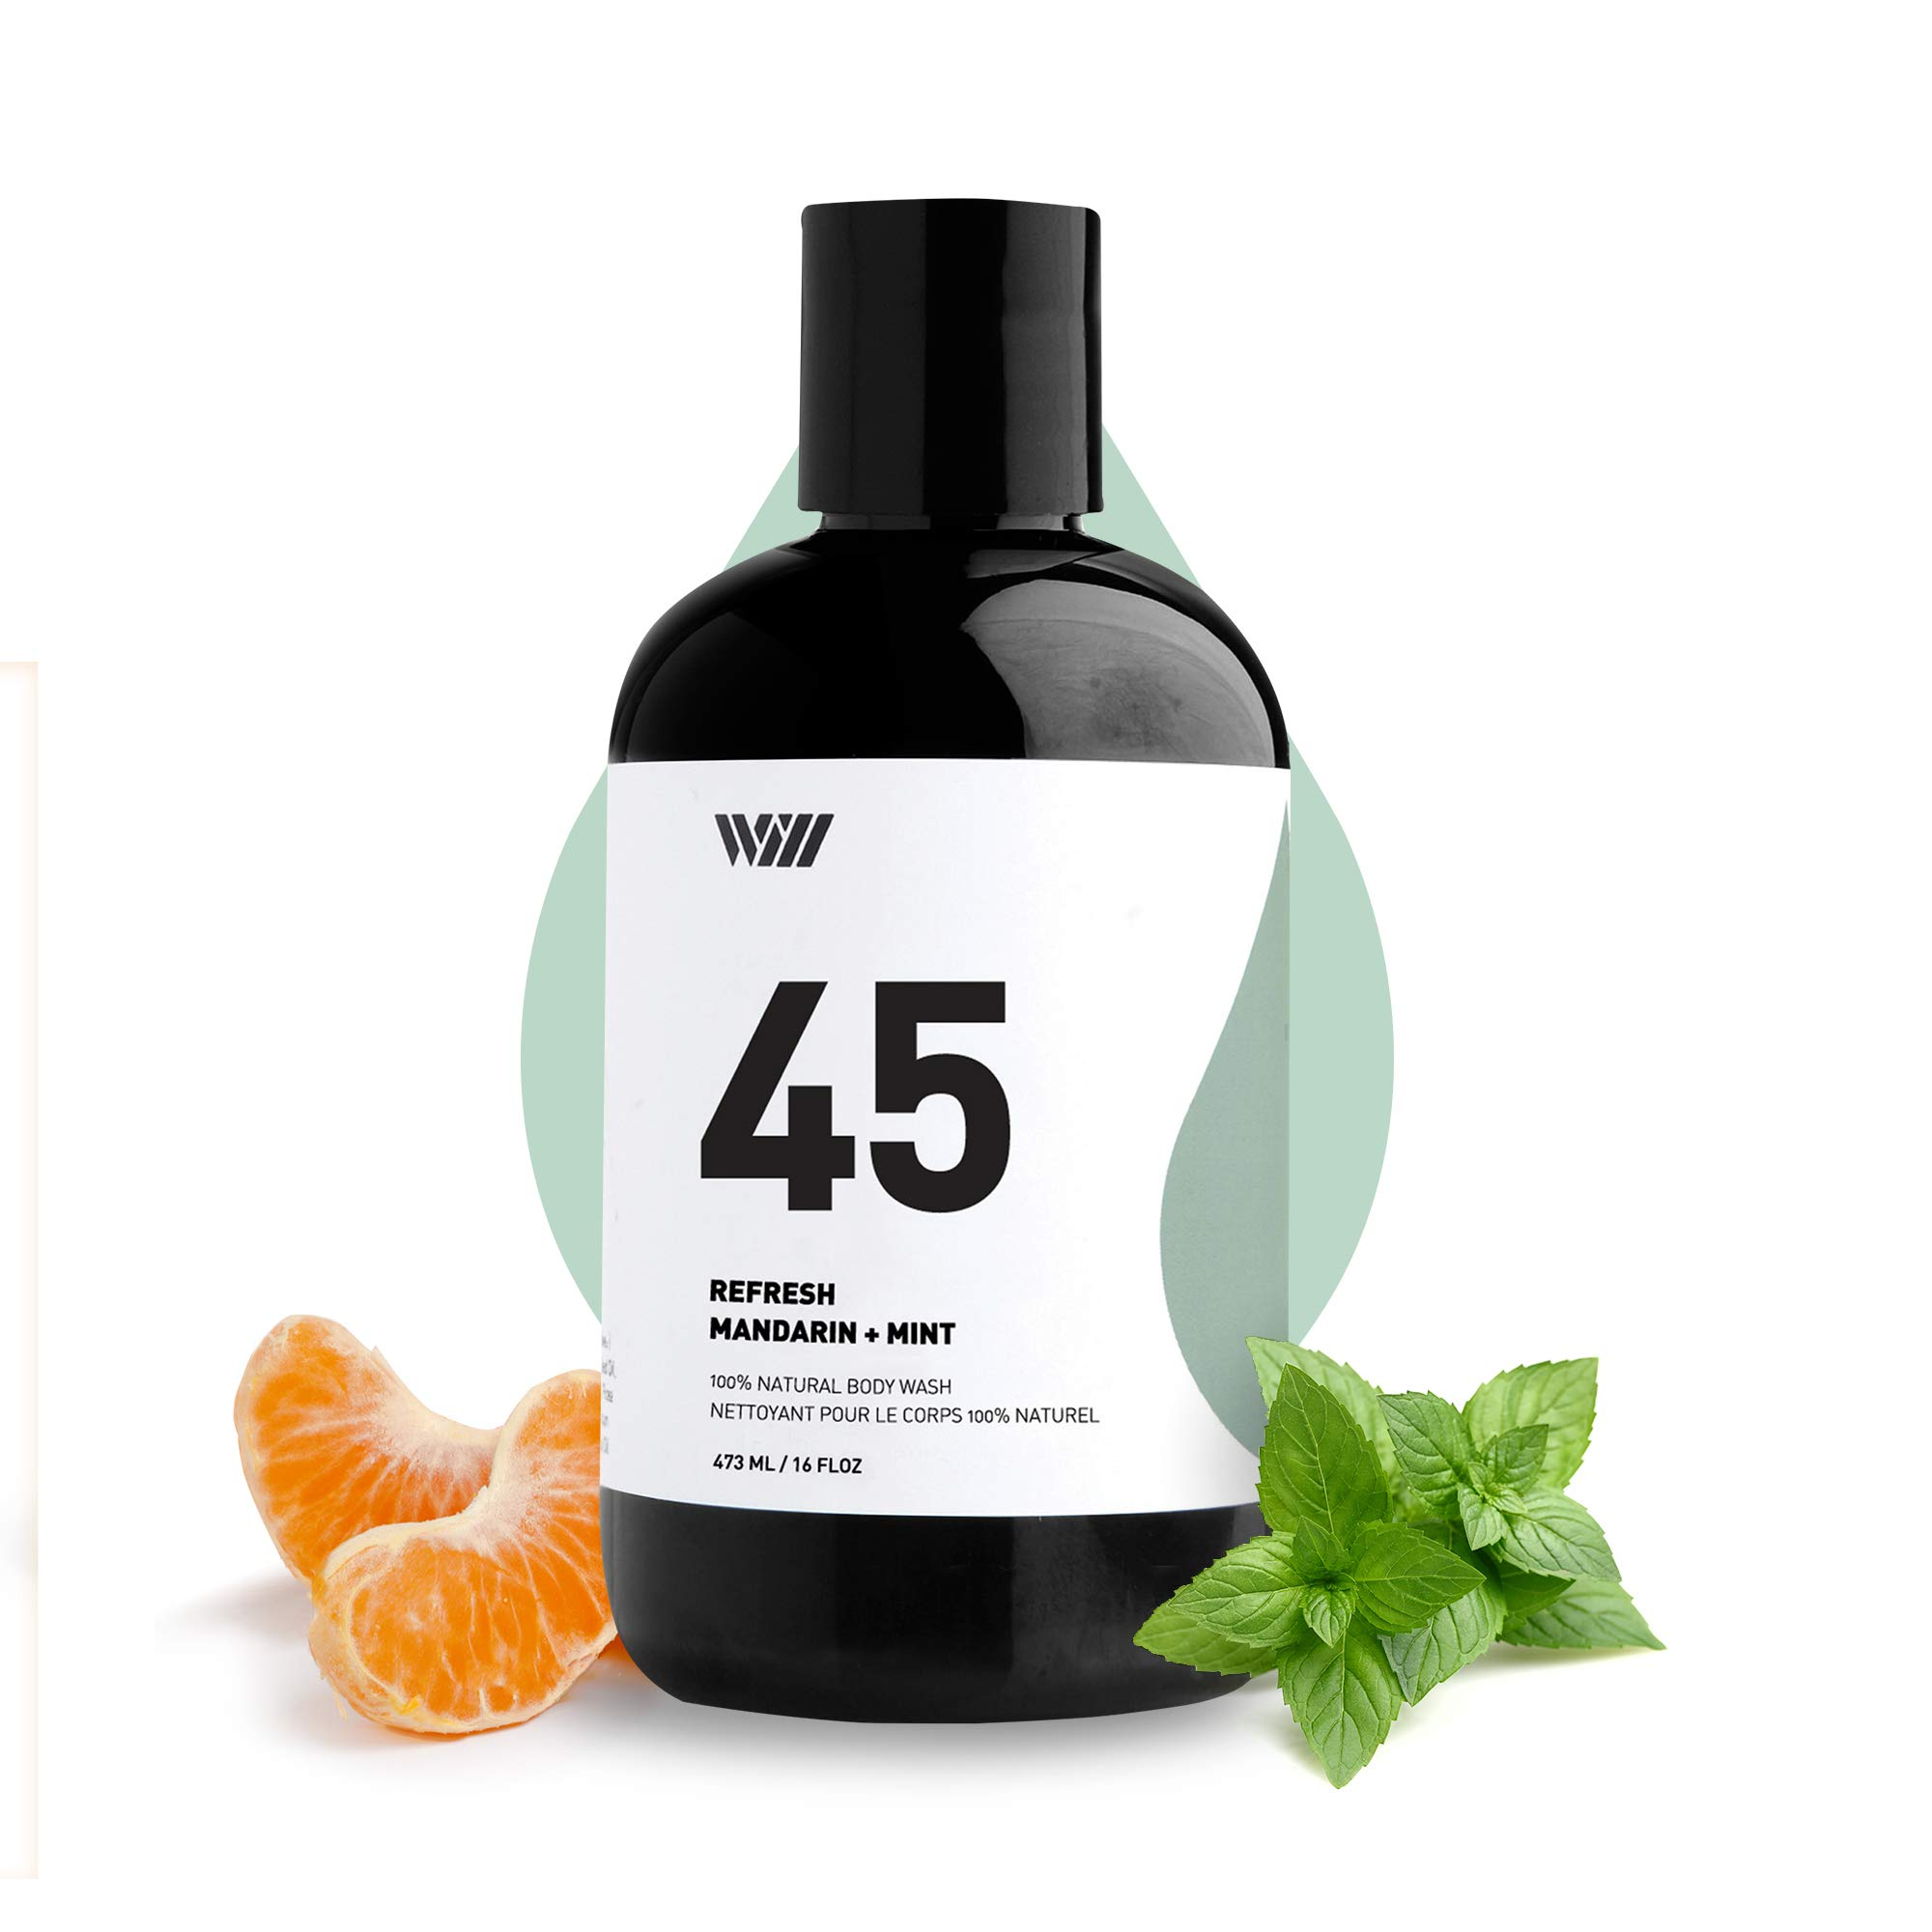 45 Natural Cleansing Body Wash, Organic Shower Gel, Natural Body Wash for Men and Women, Suitable for All Skin Types (Refresh - Mandarin and Mint) - Way of Will